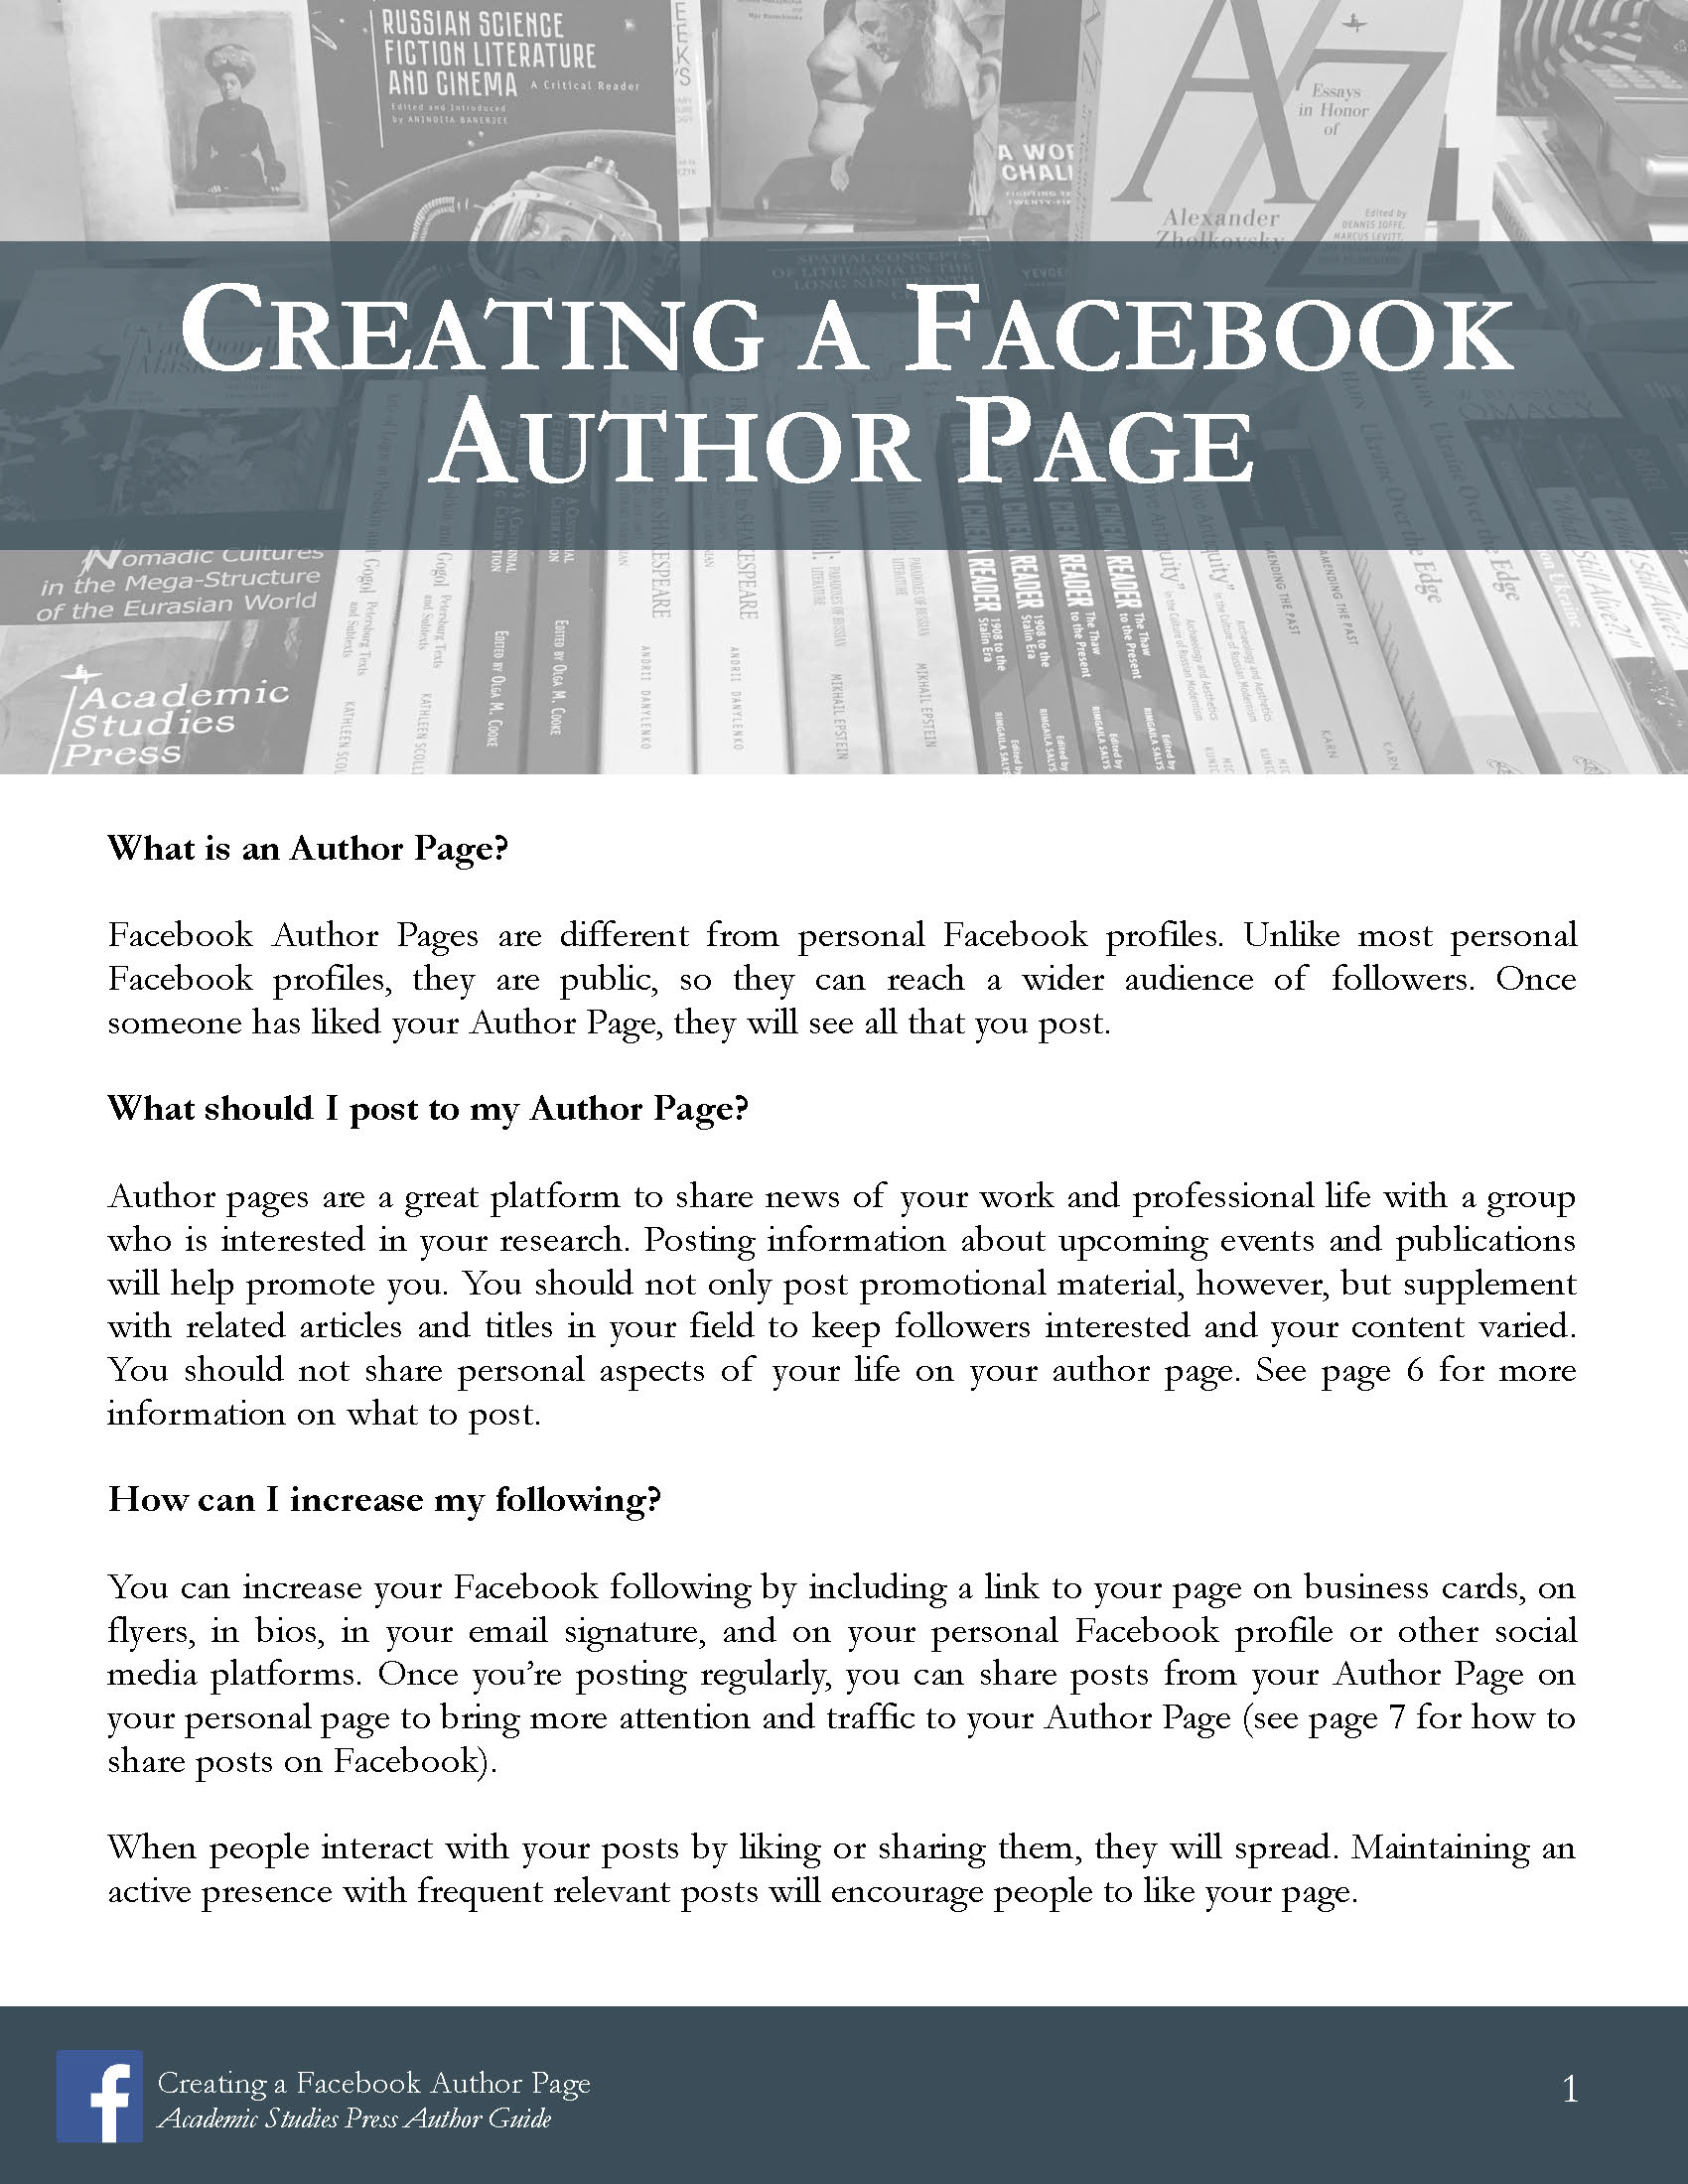 Author Guide: Creating a Facebook Author Page